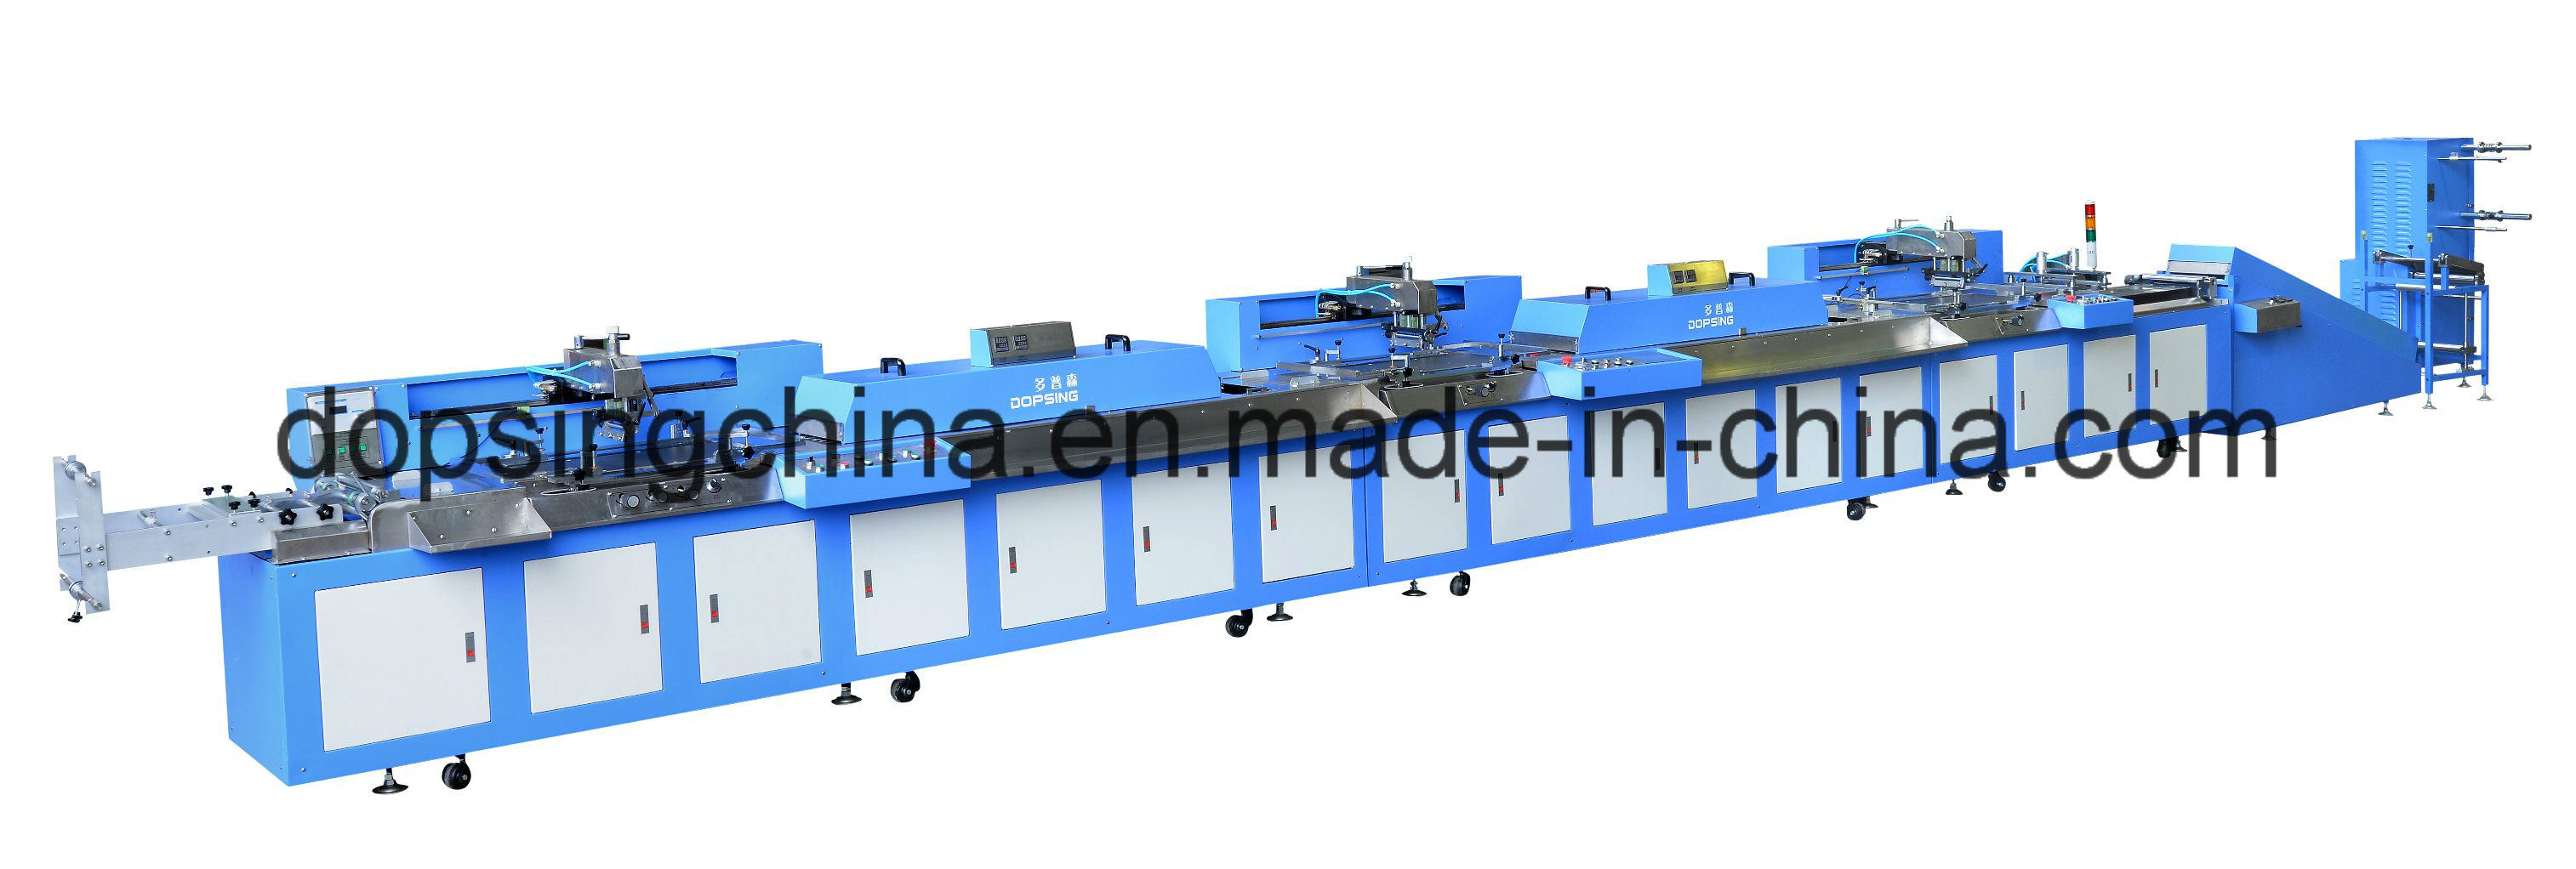 Best Price on Digital Textile Printer -